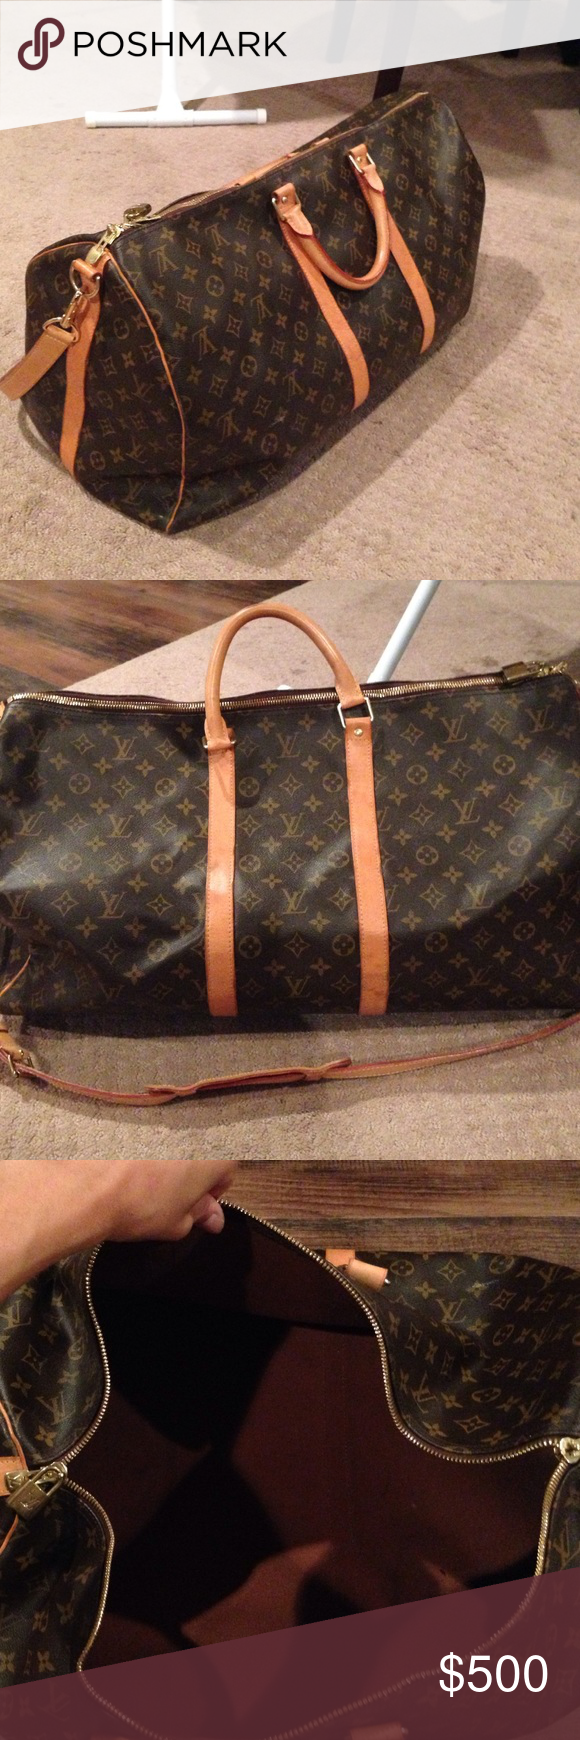 3147ebef1c79 Louis Vuitton Duffle Bag Authentic LV duffle bag made in Paris. It s a few  years